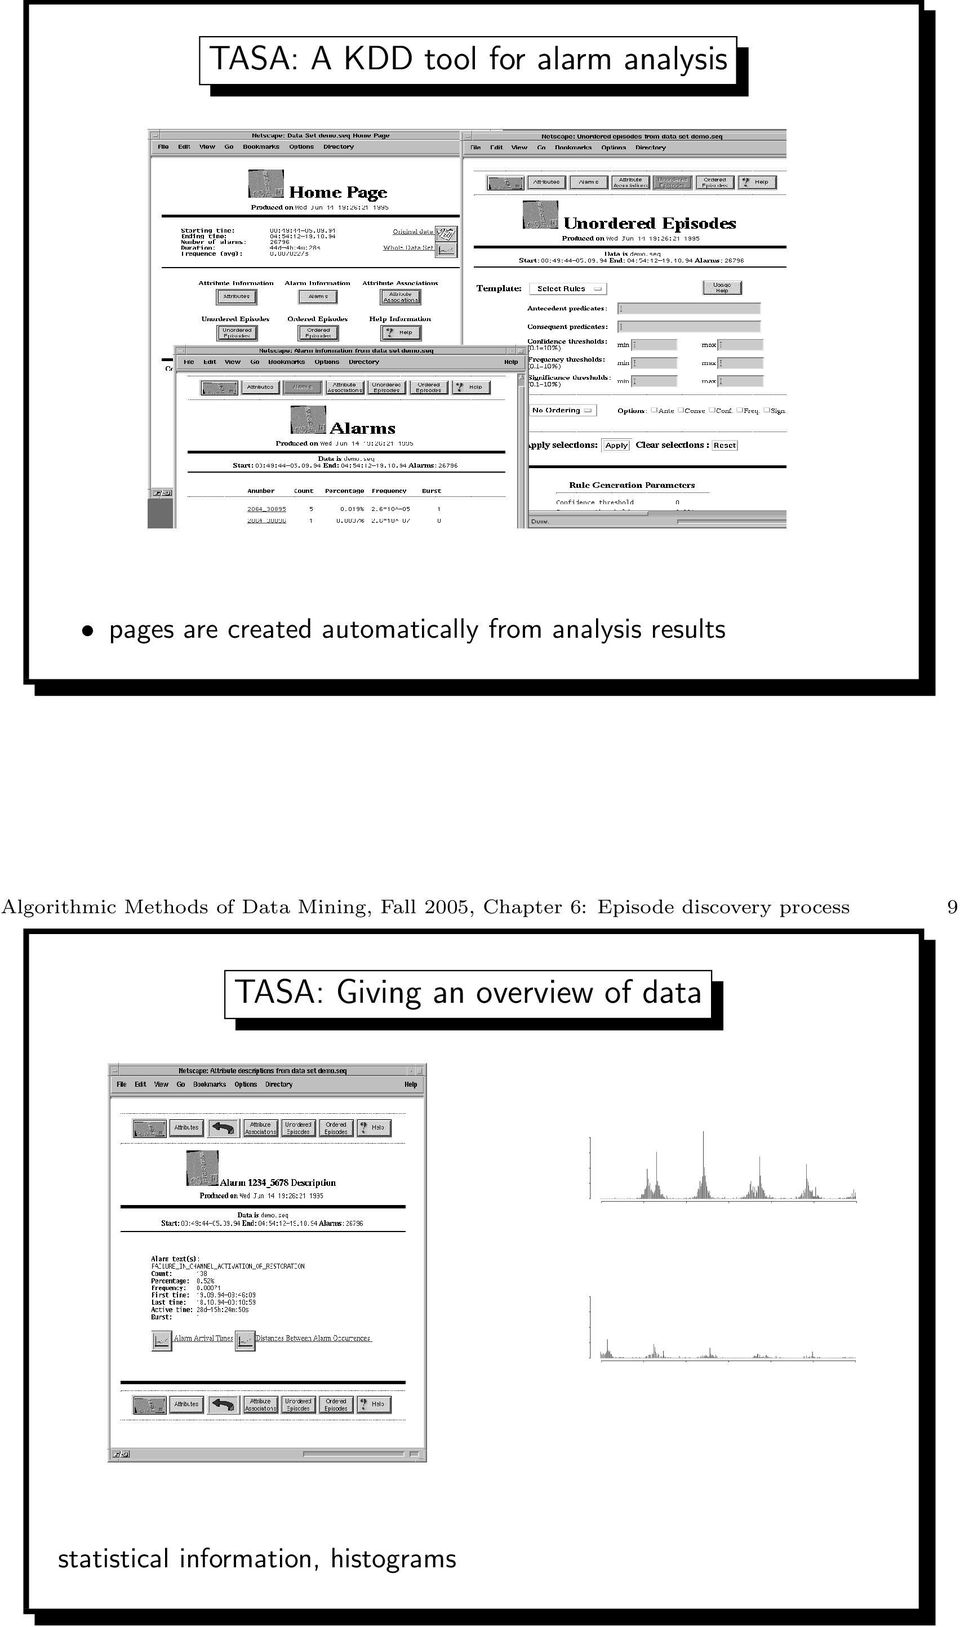 Data Mining, Fall 2005, Chapter 6: Episode discovery process